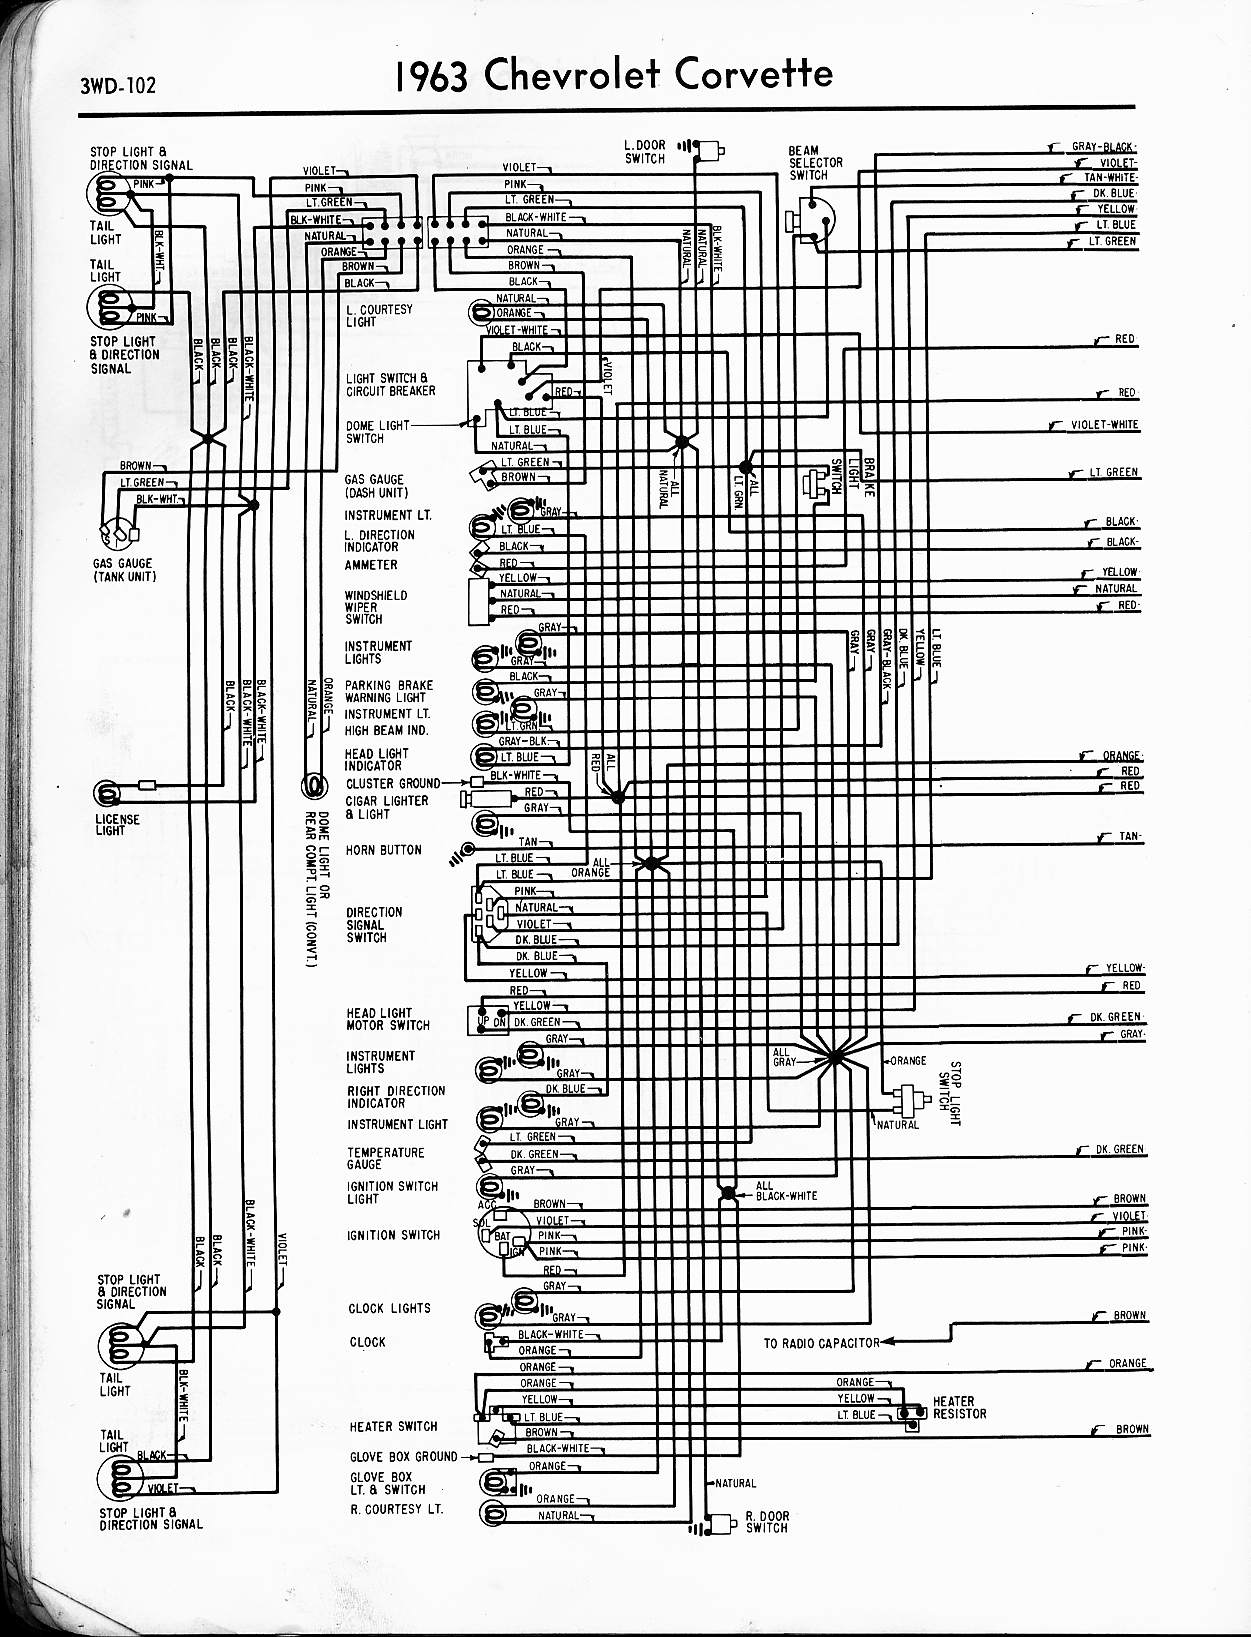 57 65 chevy wiring diagrams 1963 corvette left